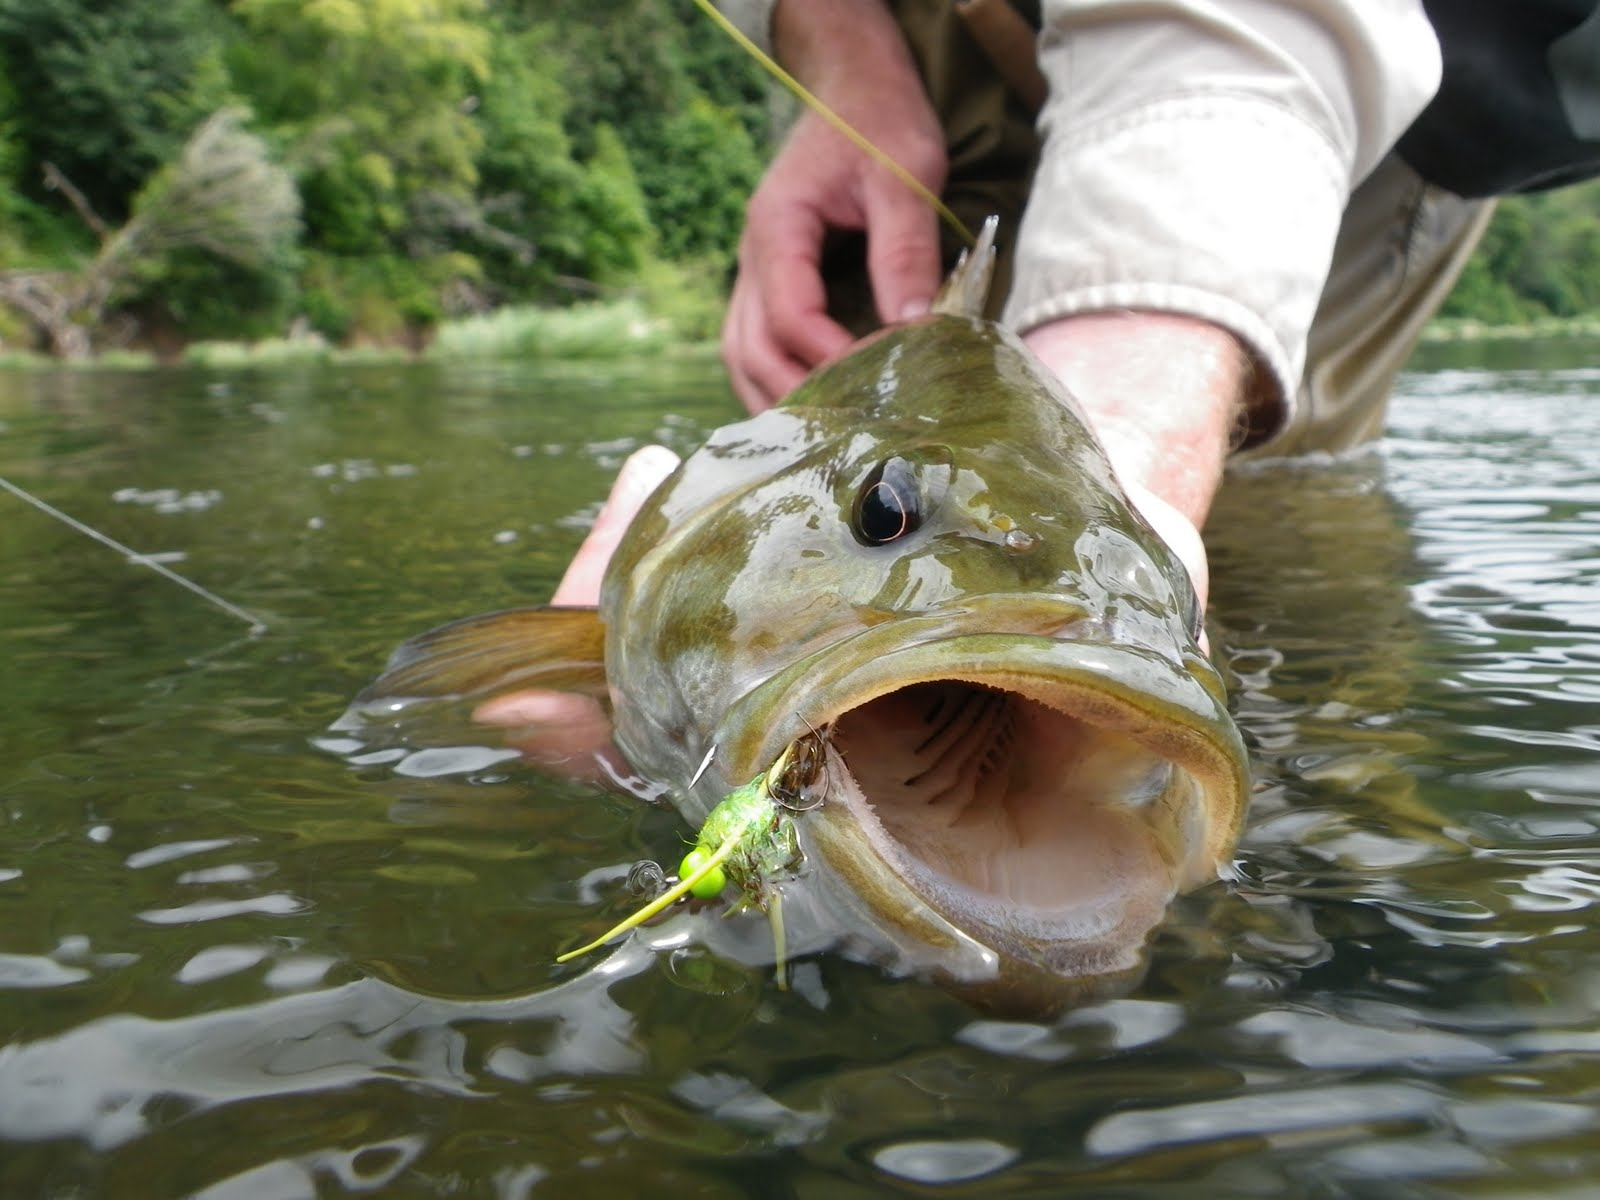 Brian marz 39 s fly fishing oregon blog umpqua bass report for Smallmouth bass fly fishing